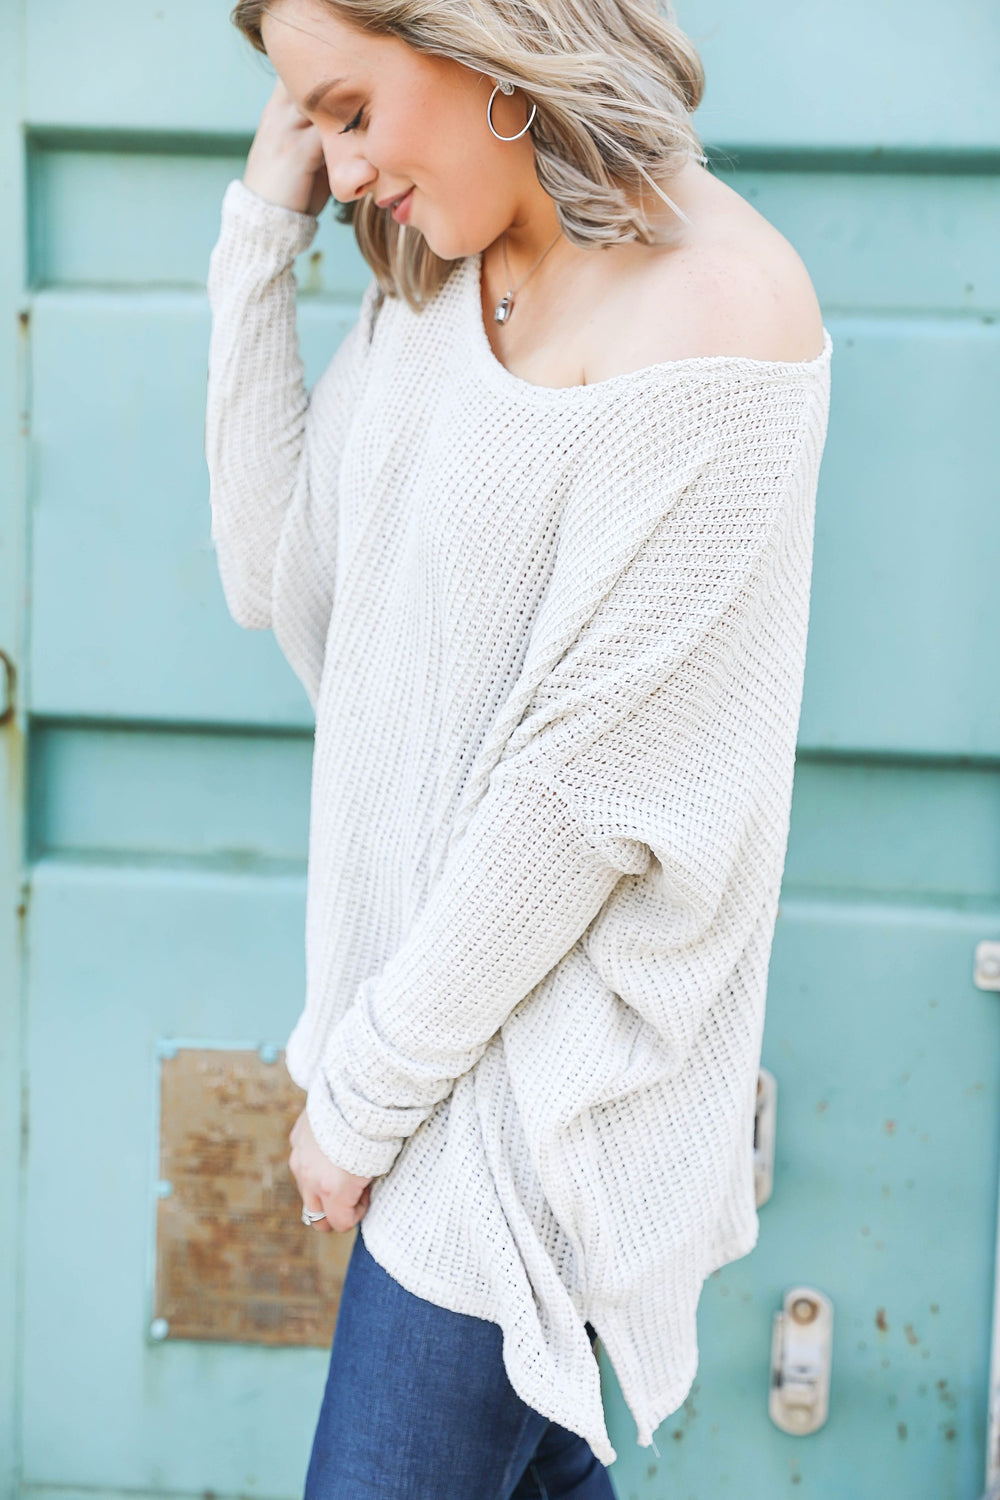 Afternoon Drinks Slouchy Sweater Inspired by Kendra Raymer x Kendra Scott